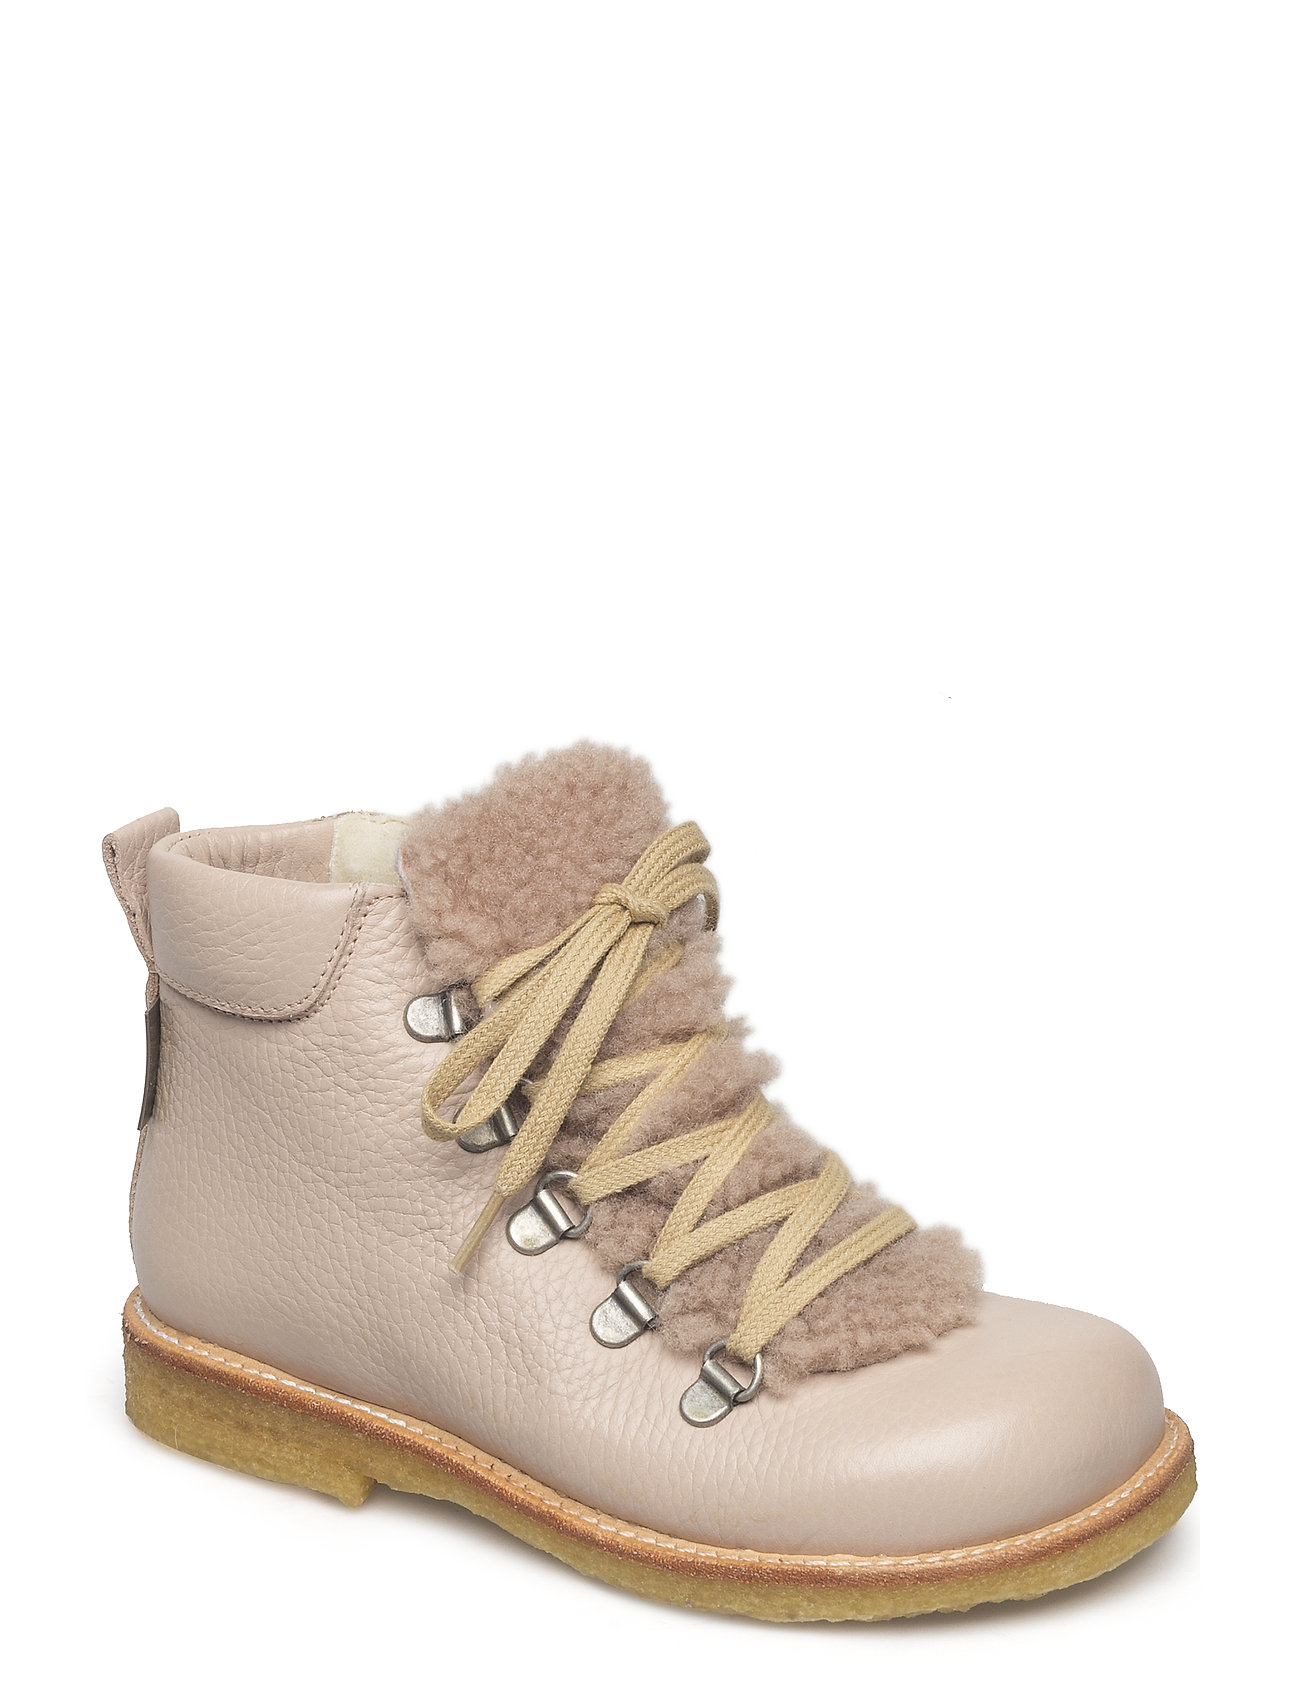 ANGULUS Boots - flat - with lace and zip - 2553/2019 POWDER/BEIGE